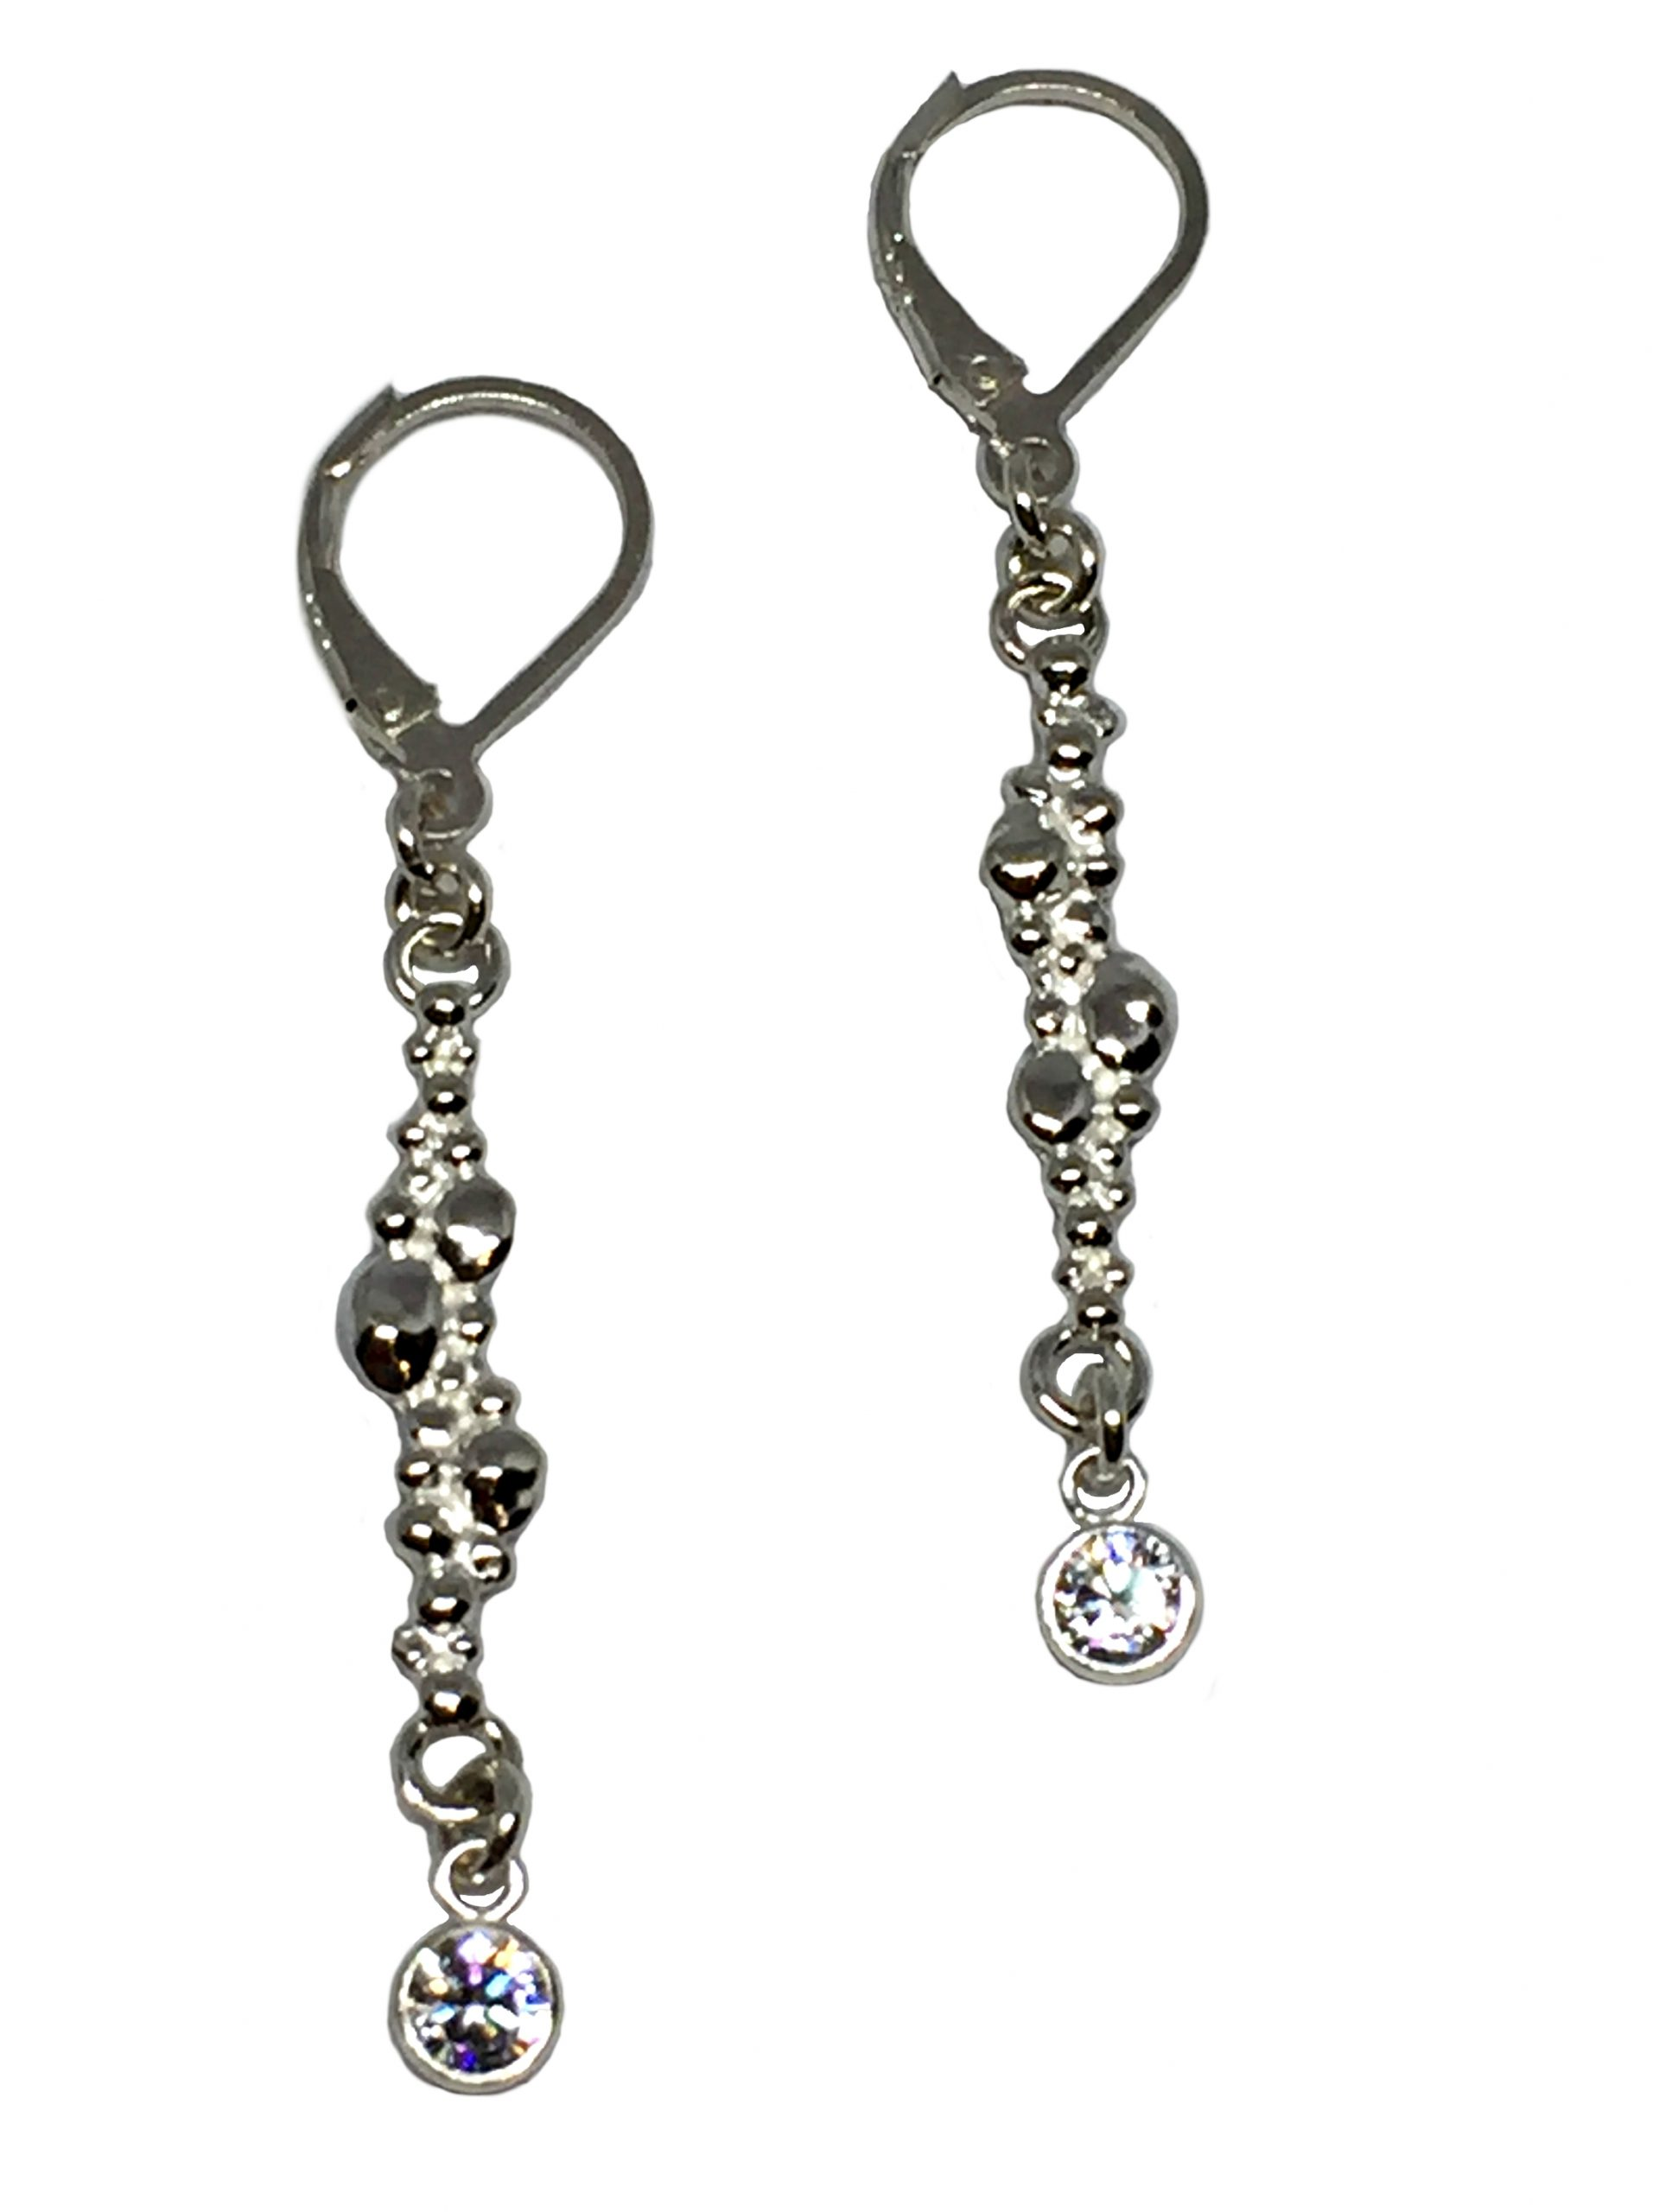 Sterling silver and CZ delicate linear drop earrings by Karyn Chopik | Effusion Art Gallery + Glass Studio, Invermere BC